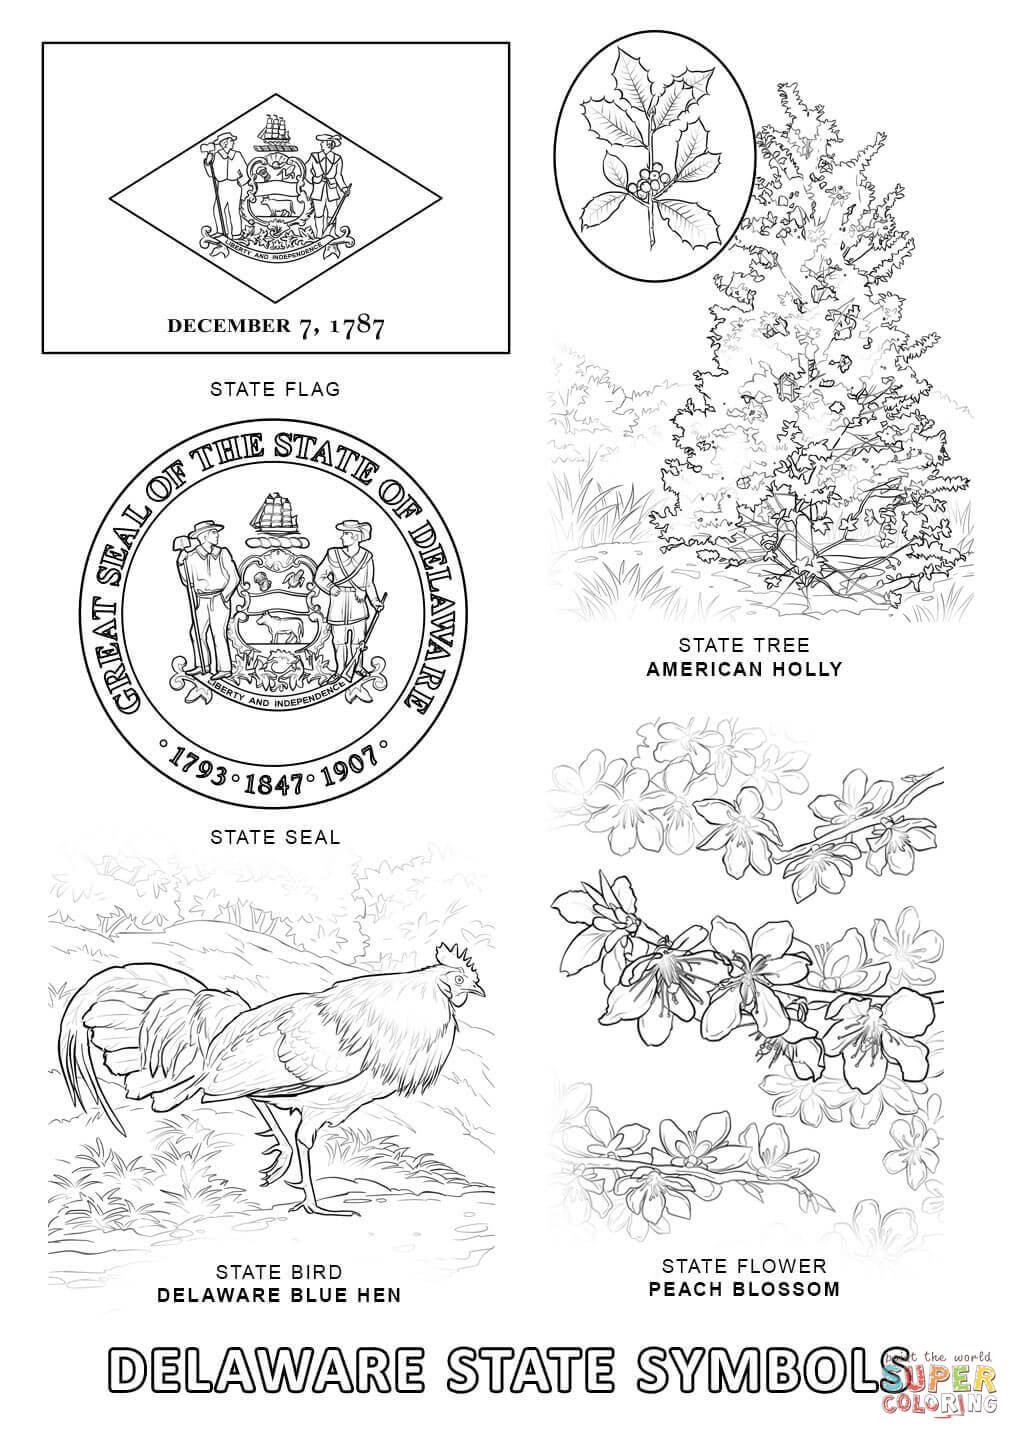 Delaware State Symbols Coloring Page Jpg 1020 1440 Bird